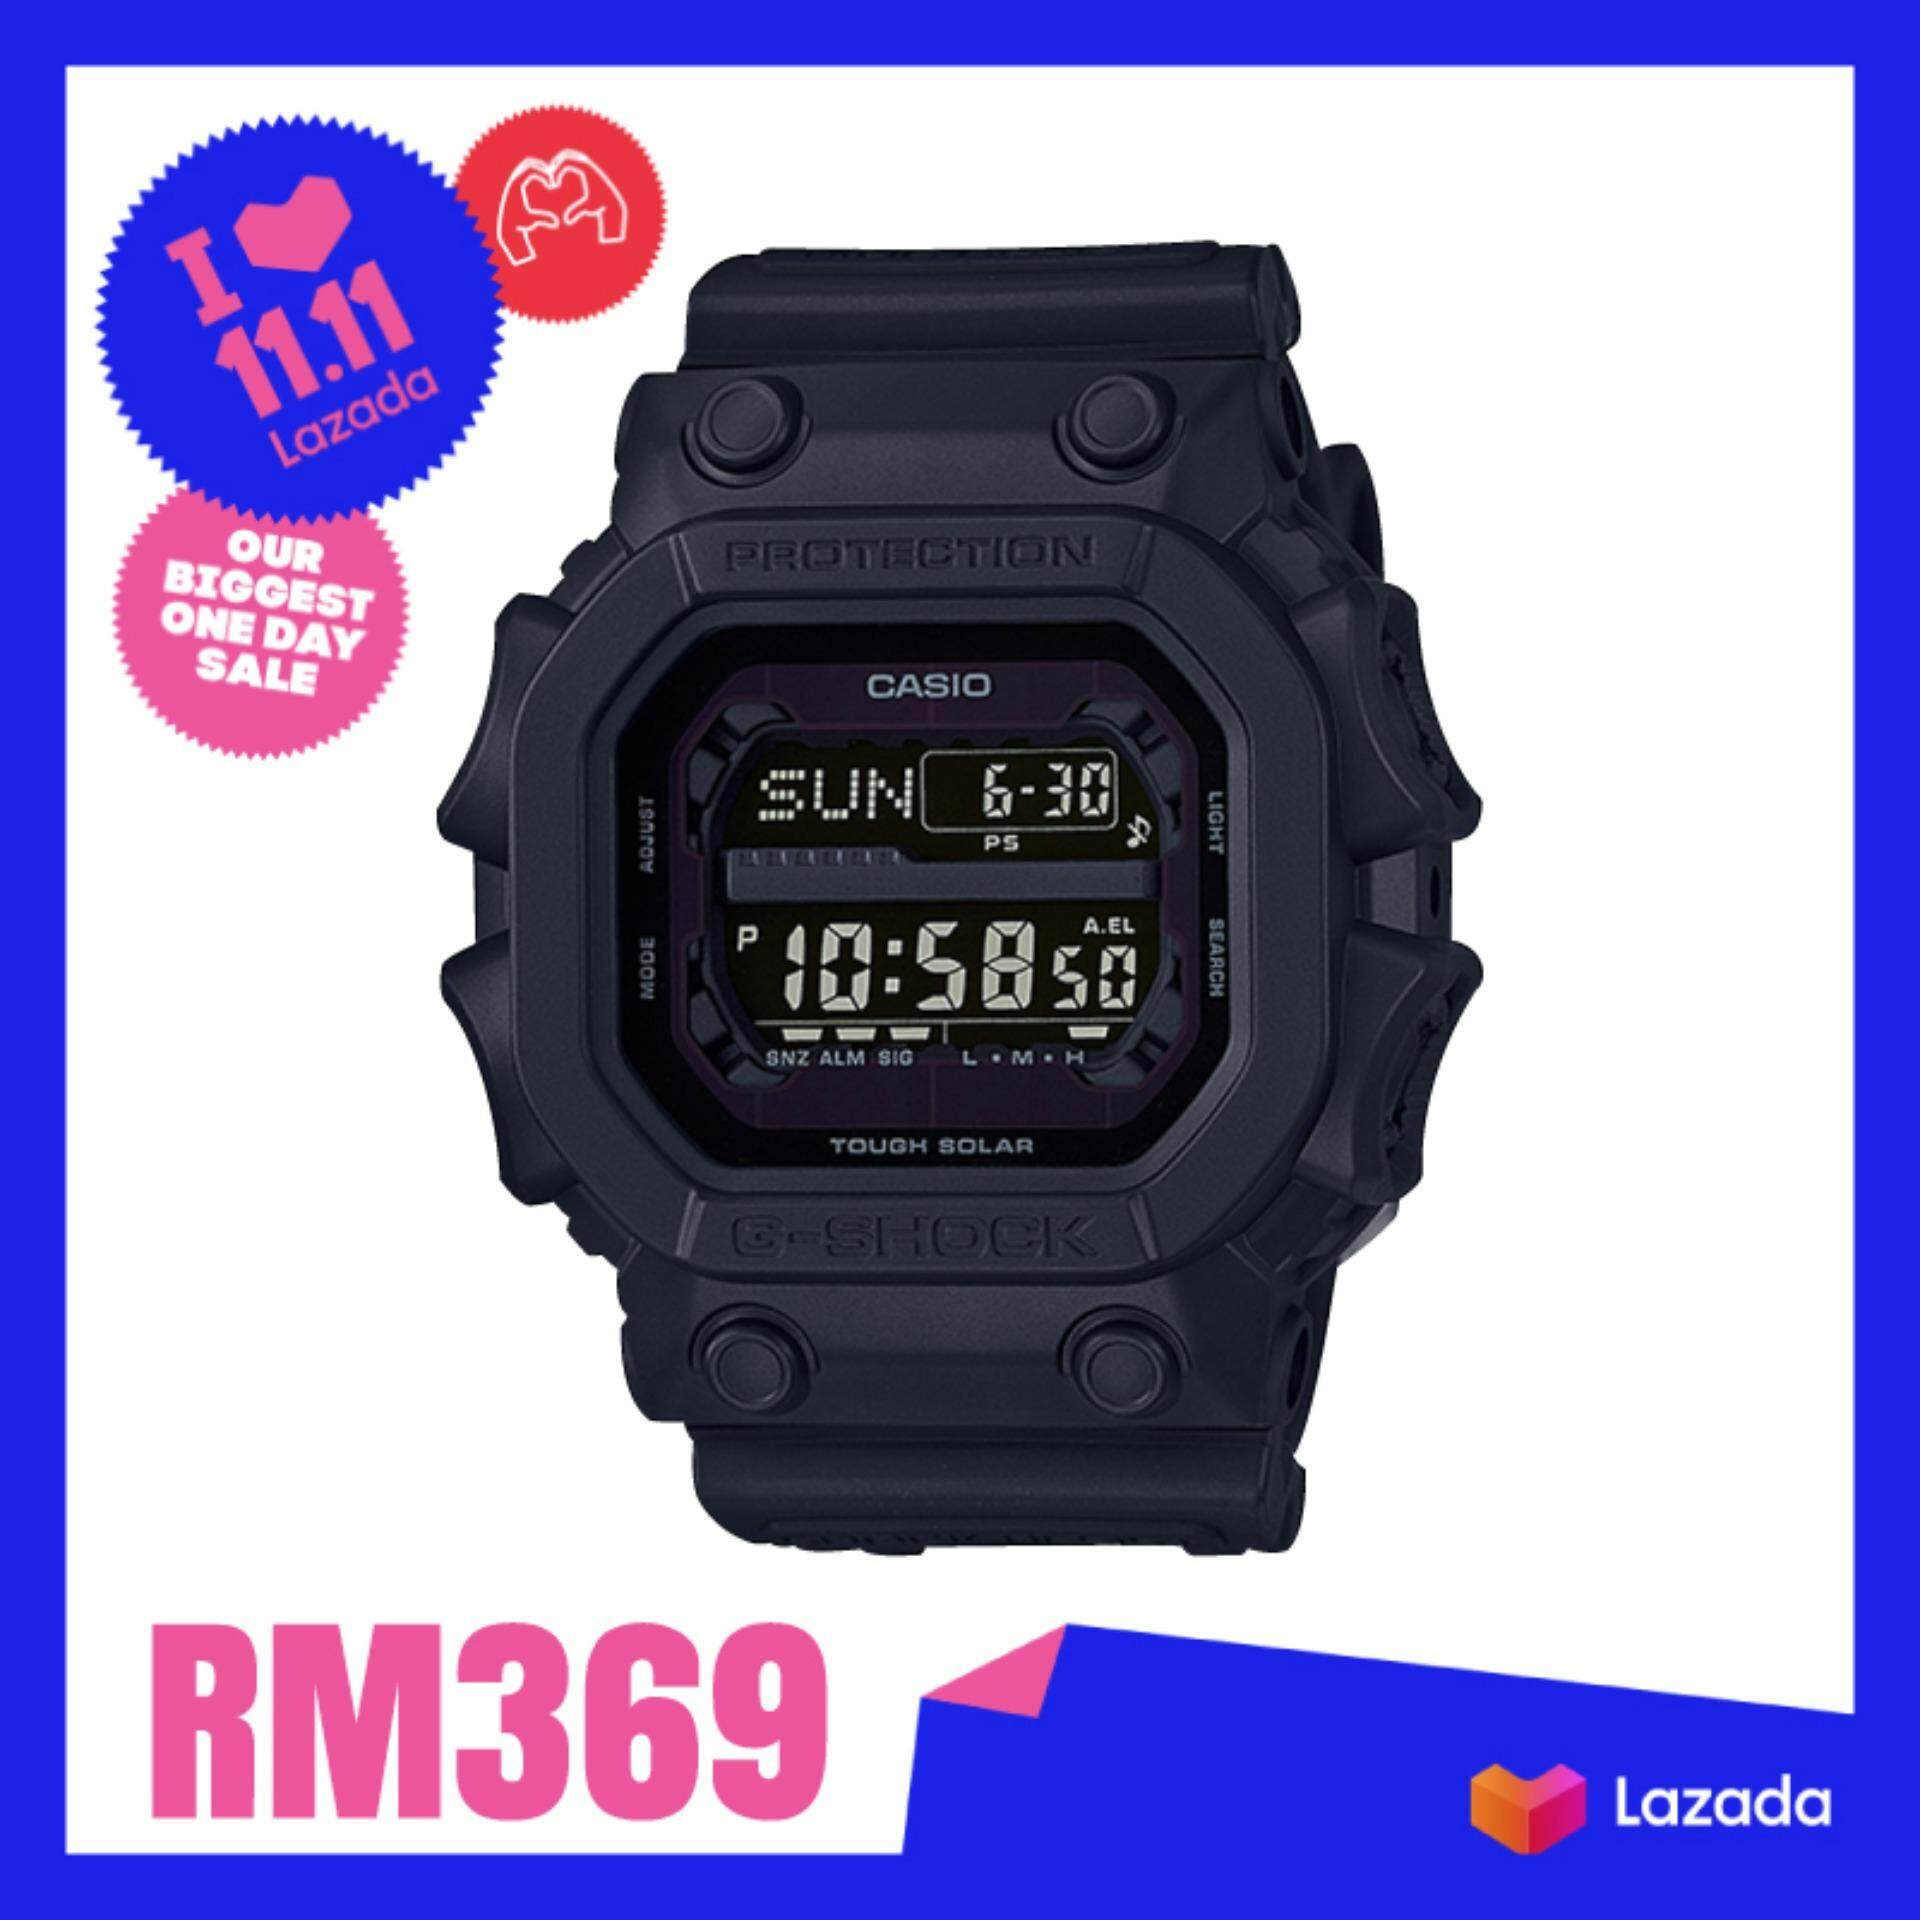 [100% Original G SHOCK]Casio G-Shock Black Out Series Black Resin Band Watch GX56BB-1D GX-56BB-1D GX-56BB-1 (watch for man / jam tangan lelaki / casio watch for men / casio watch / men watch / watch for men) Malaysia